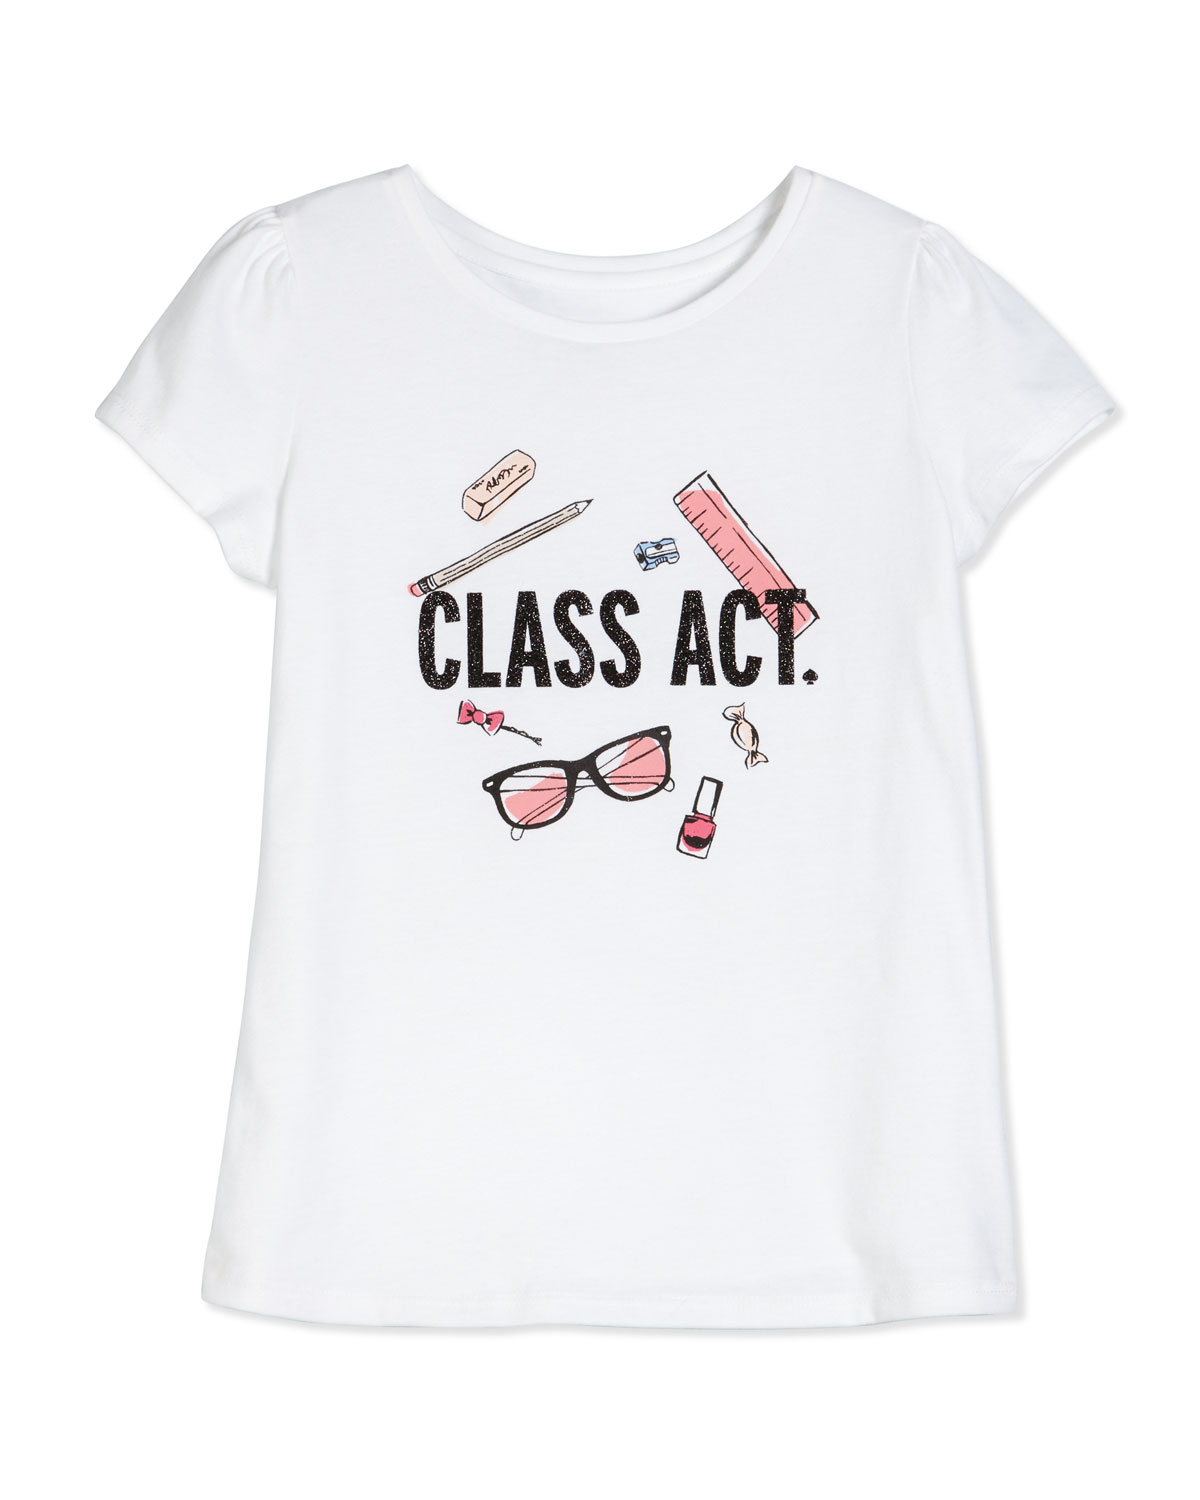 class act cotton jersey tee, white, size 7-14